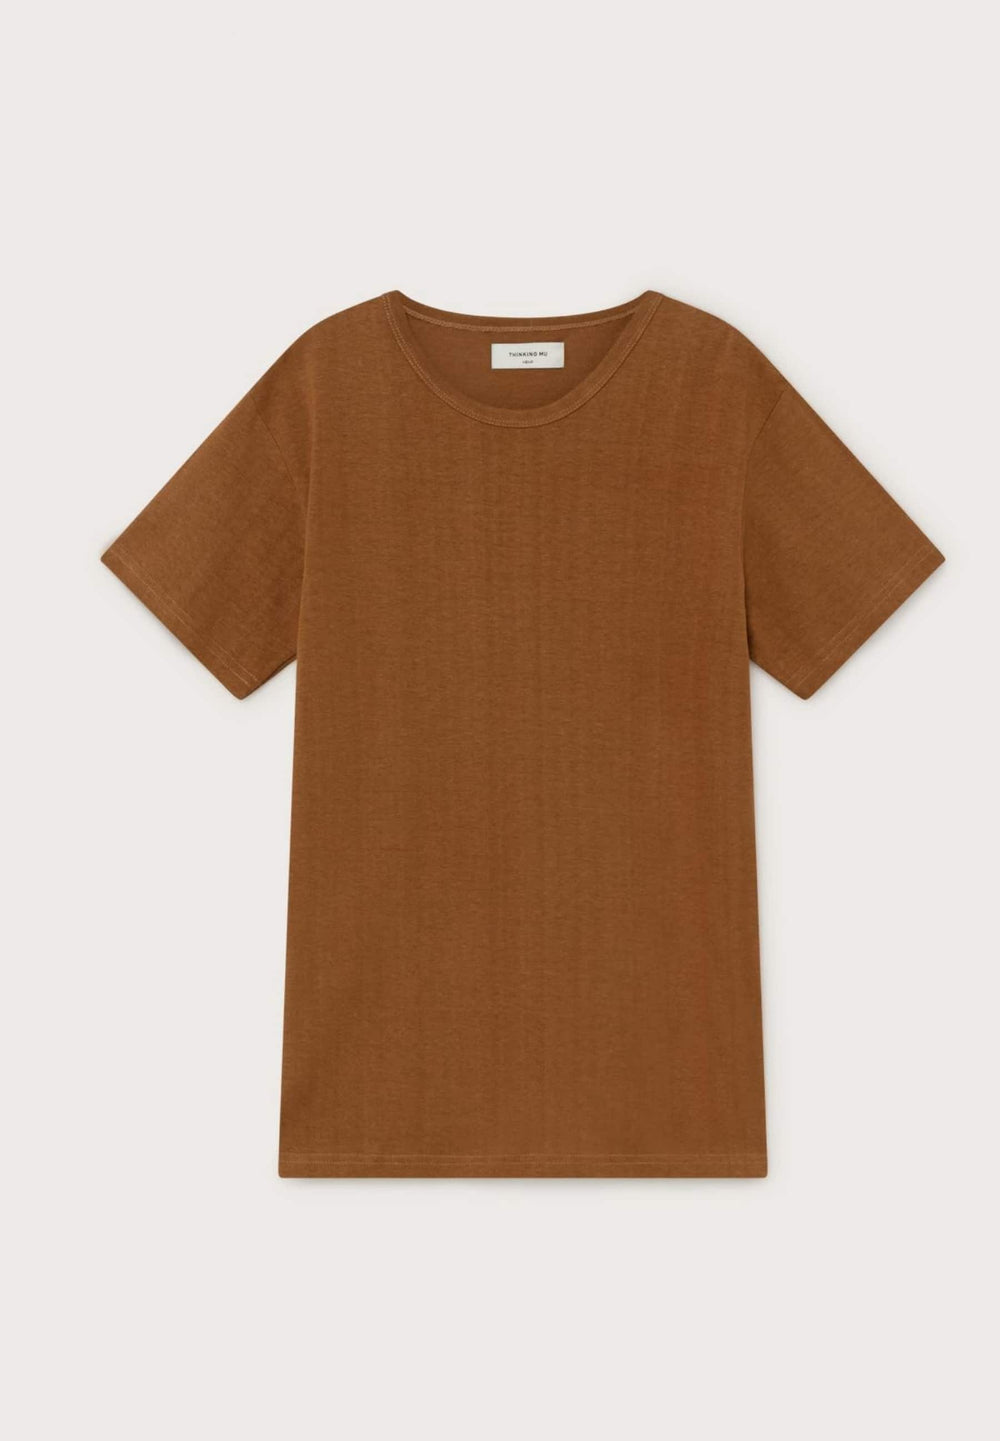 Thinking Mu T-shirts T-shirt Basic Hemp Caramel